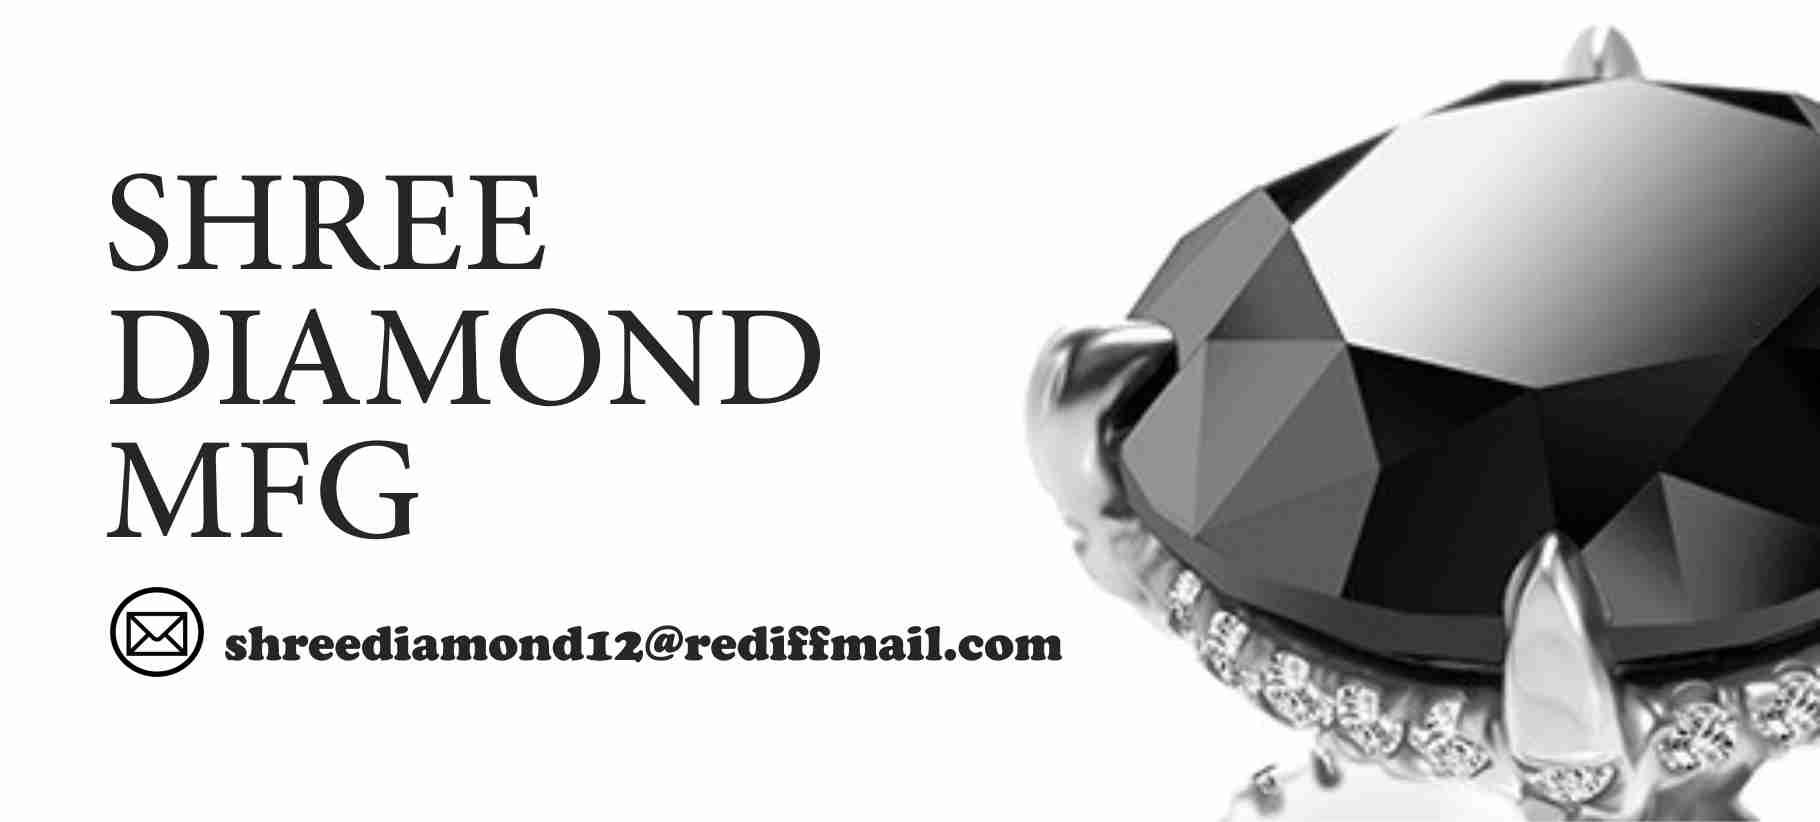 SHREE DIAMOND MFG.(Diamond manufacturer and exporter) Logo